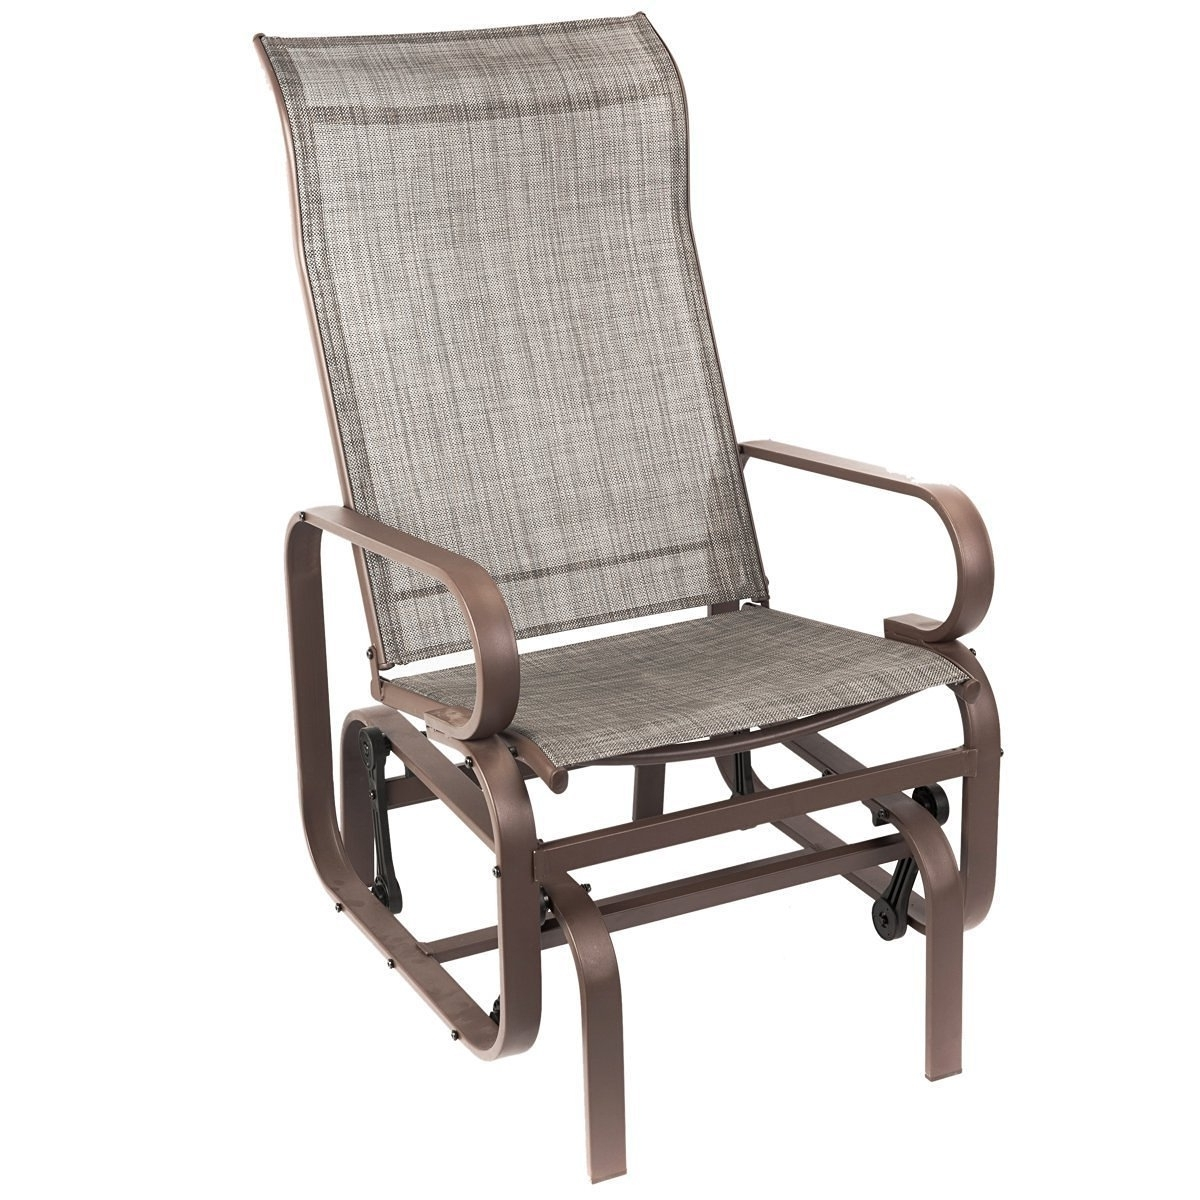 Most Popular Stackable Patio Rocking Chairs Within Resin Outdoor Patio Rocking Chair – Outdoor Designs (View 11 of 20)